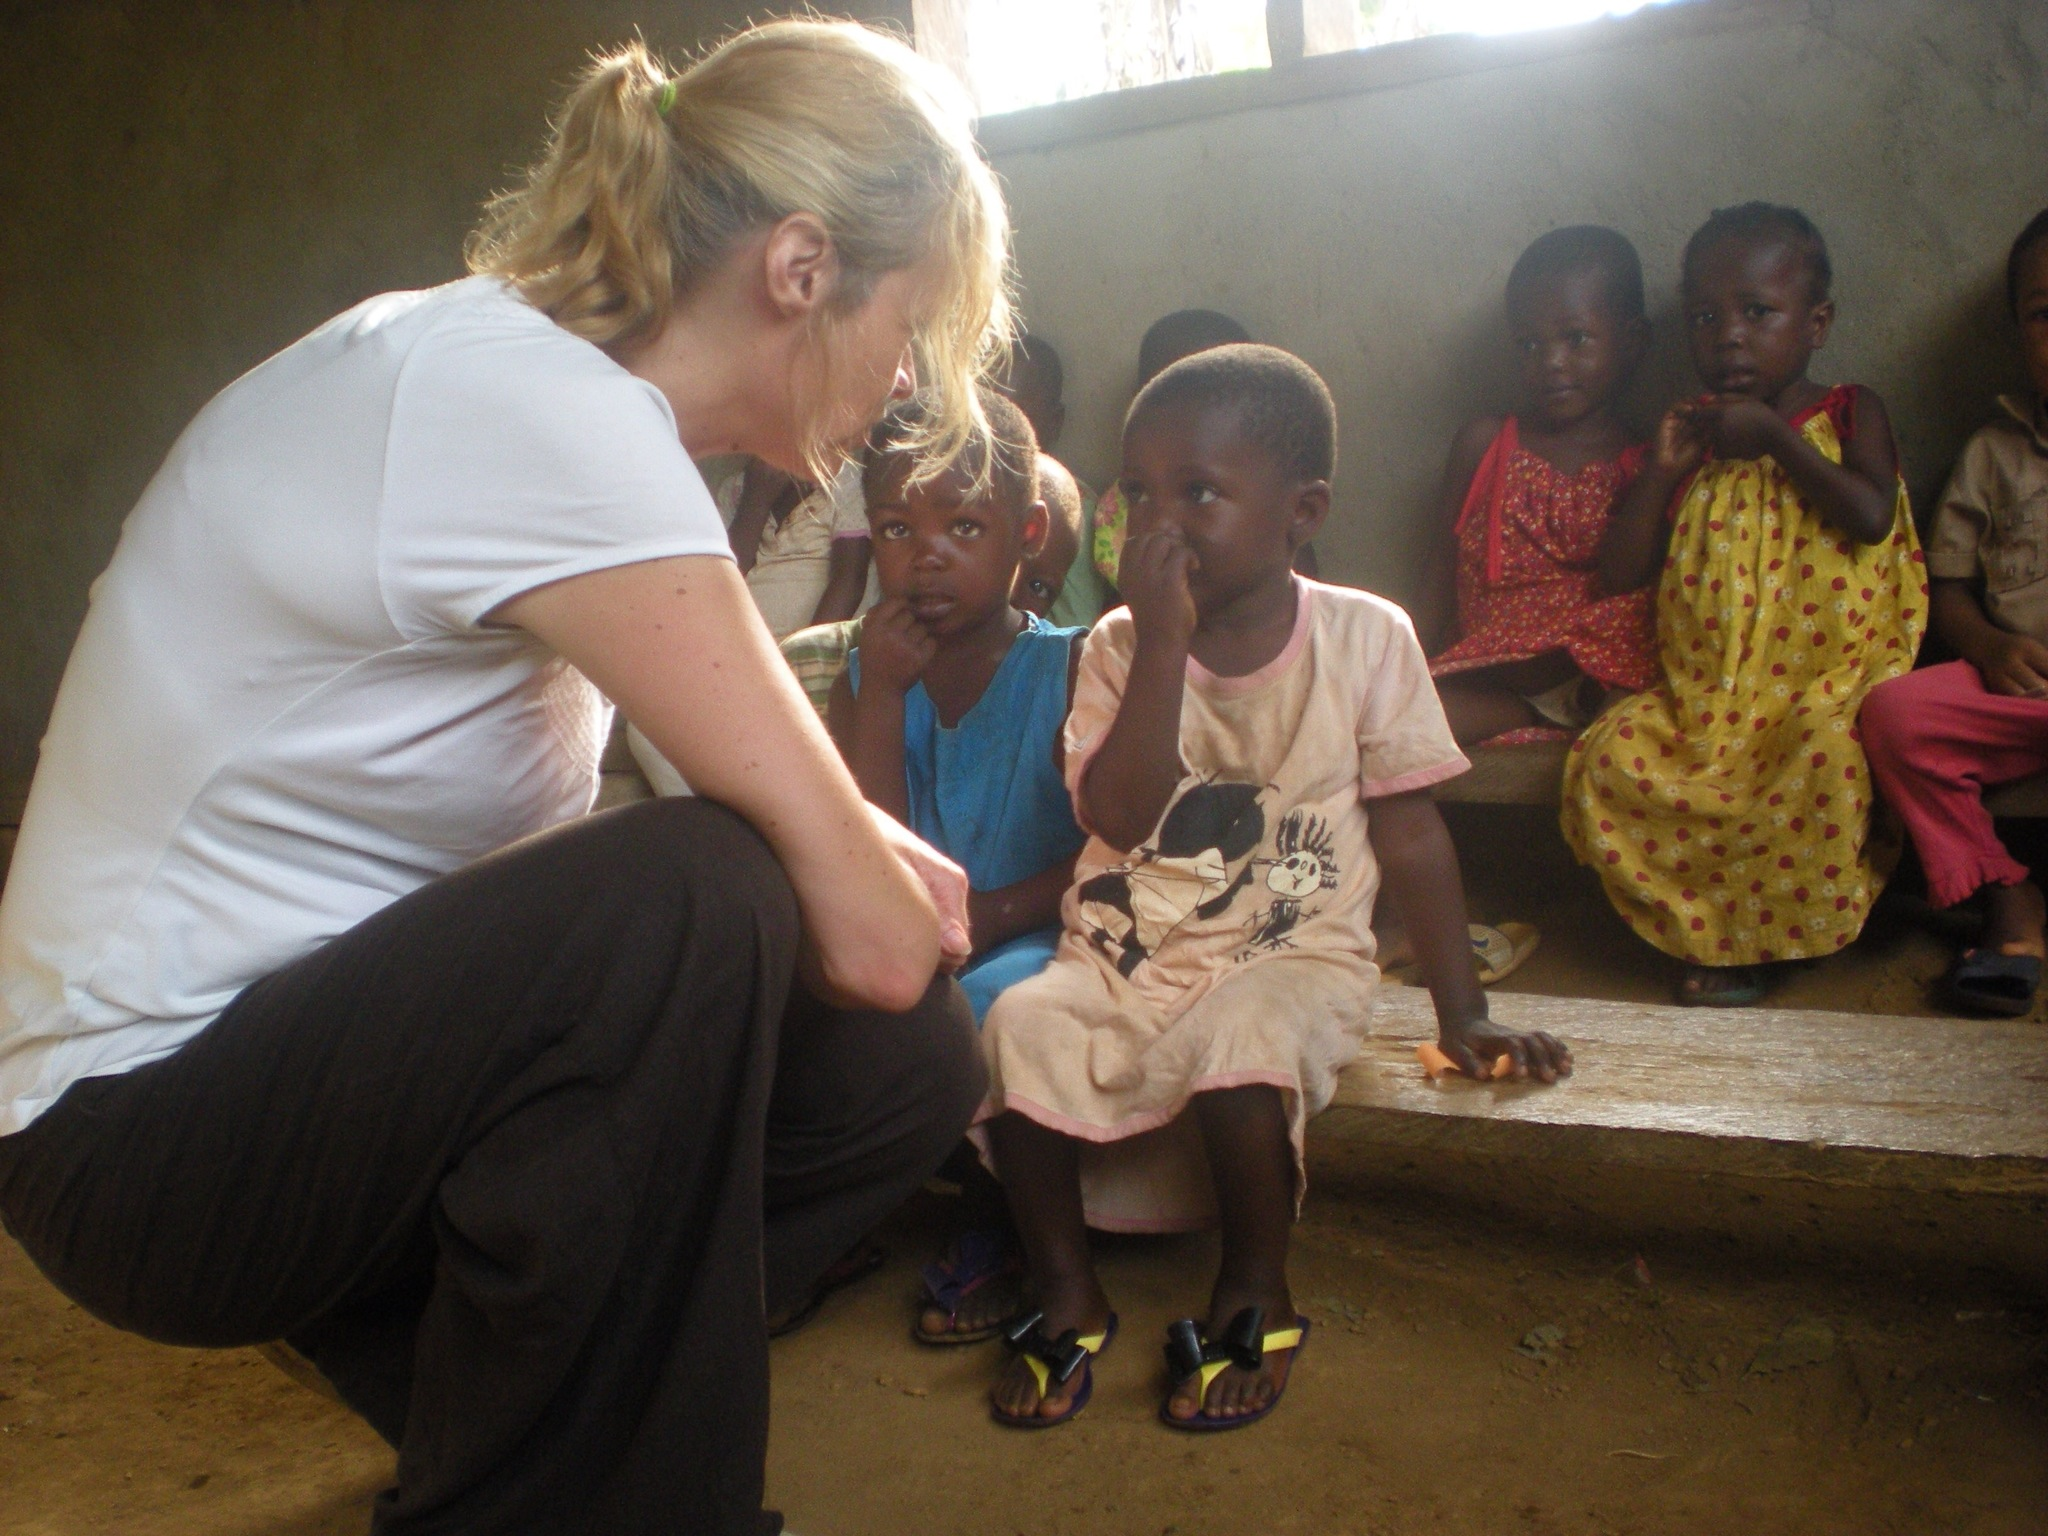 Nicky visits children at the school in February 2013